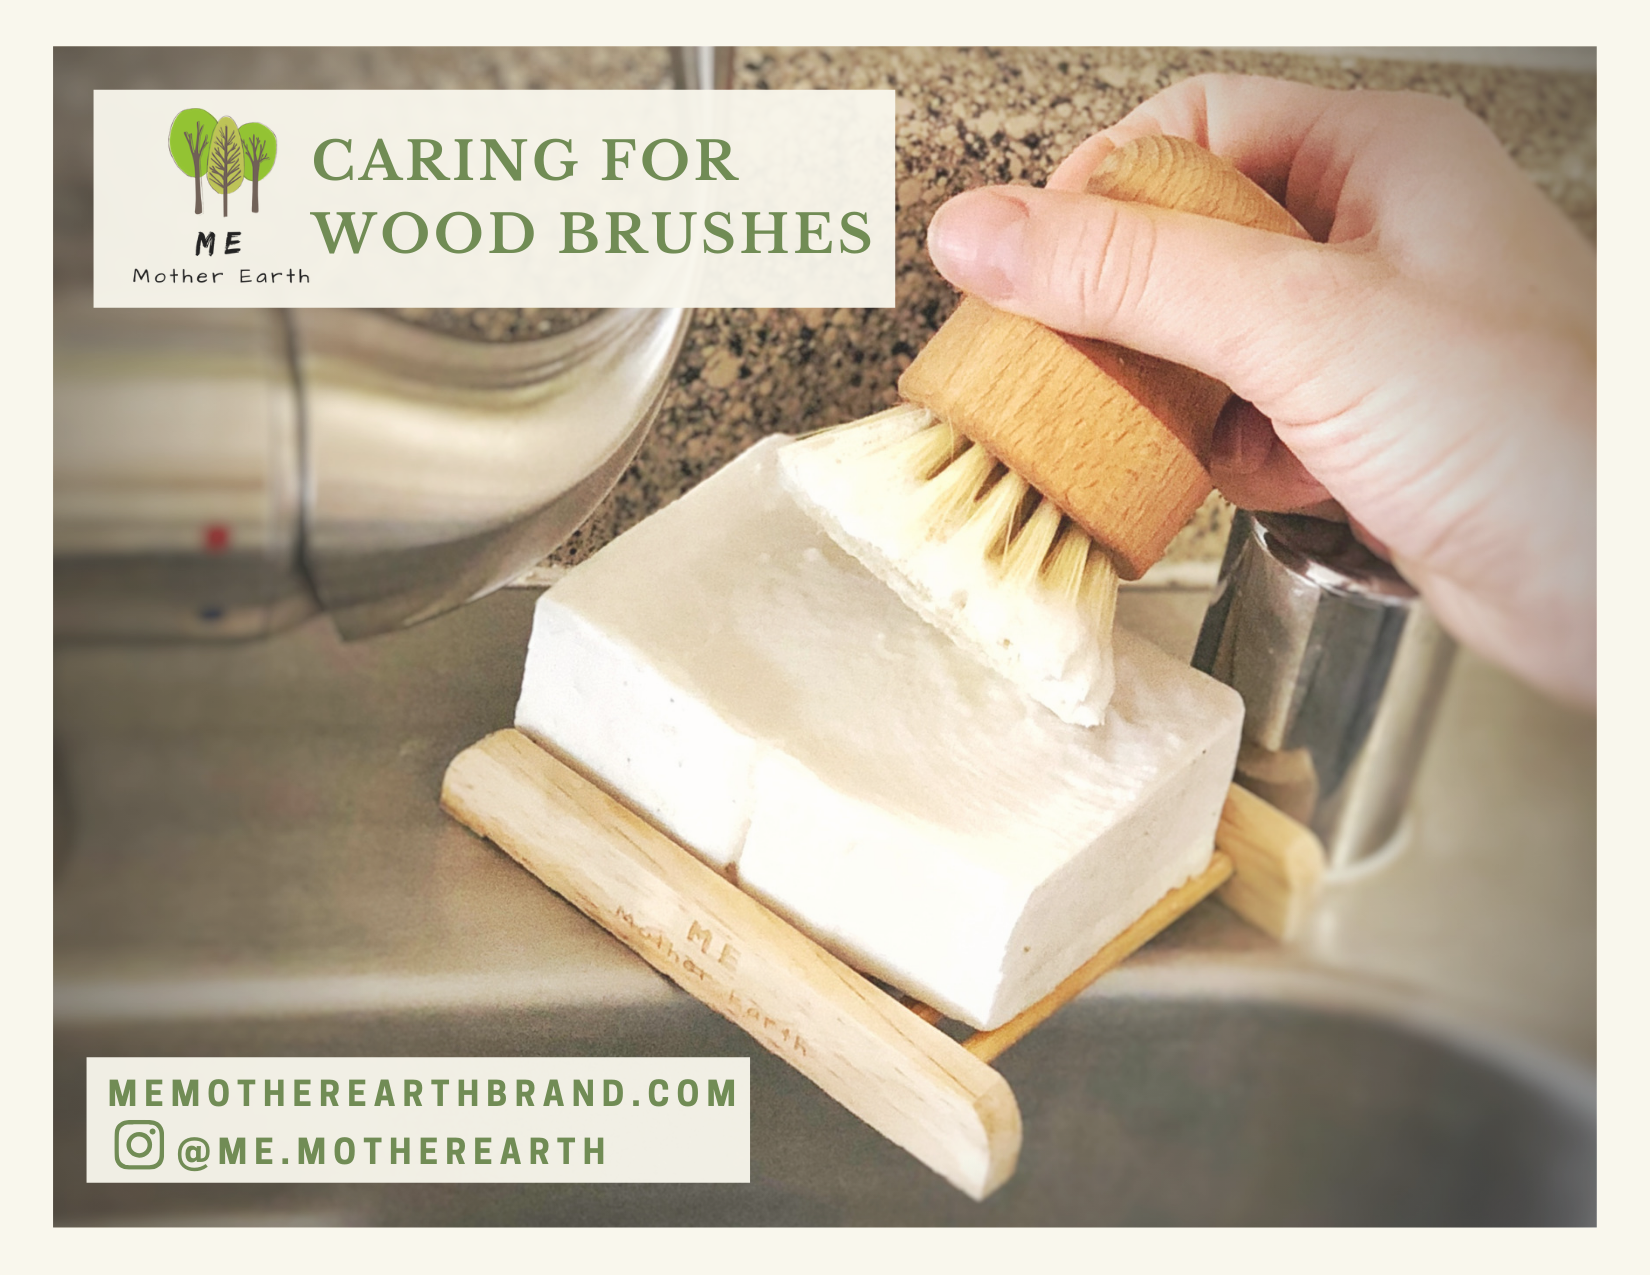 Caring for Wood Brushes